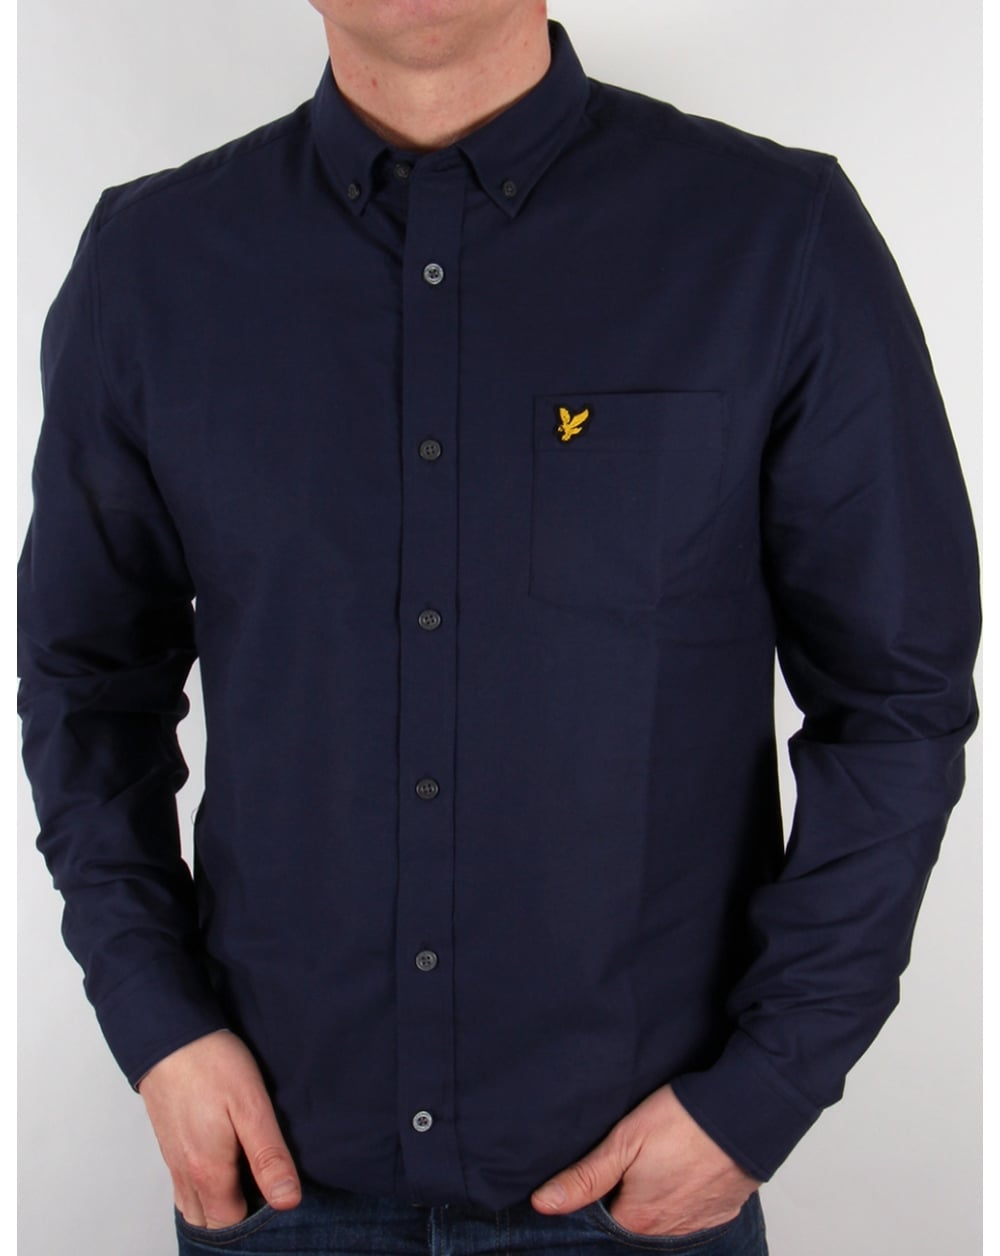 Lyle and scott shirt navy oxford long sleeve mens smart for Lyle and scott shirt sale